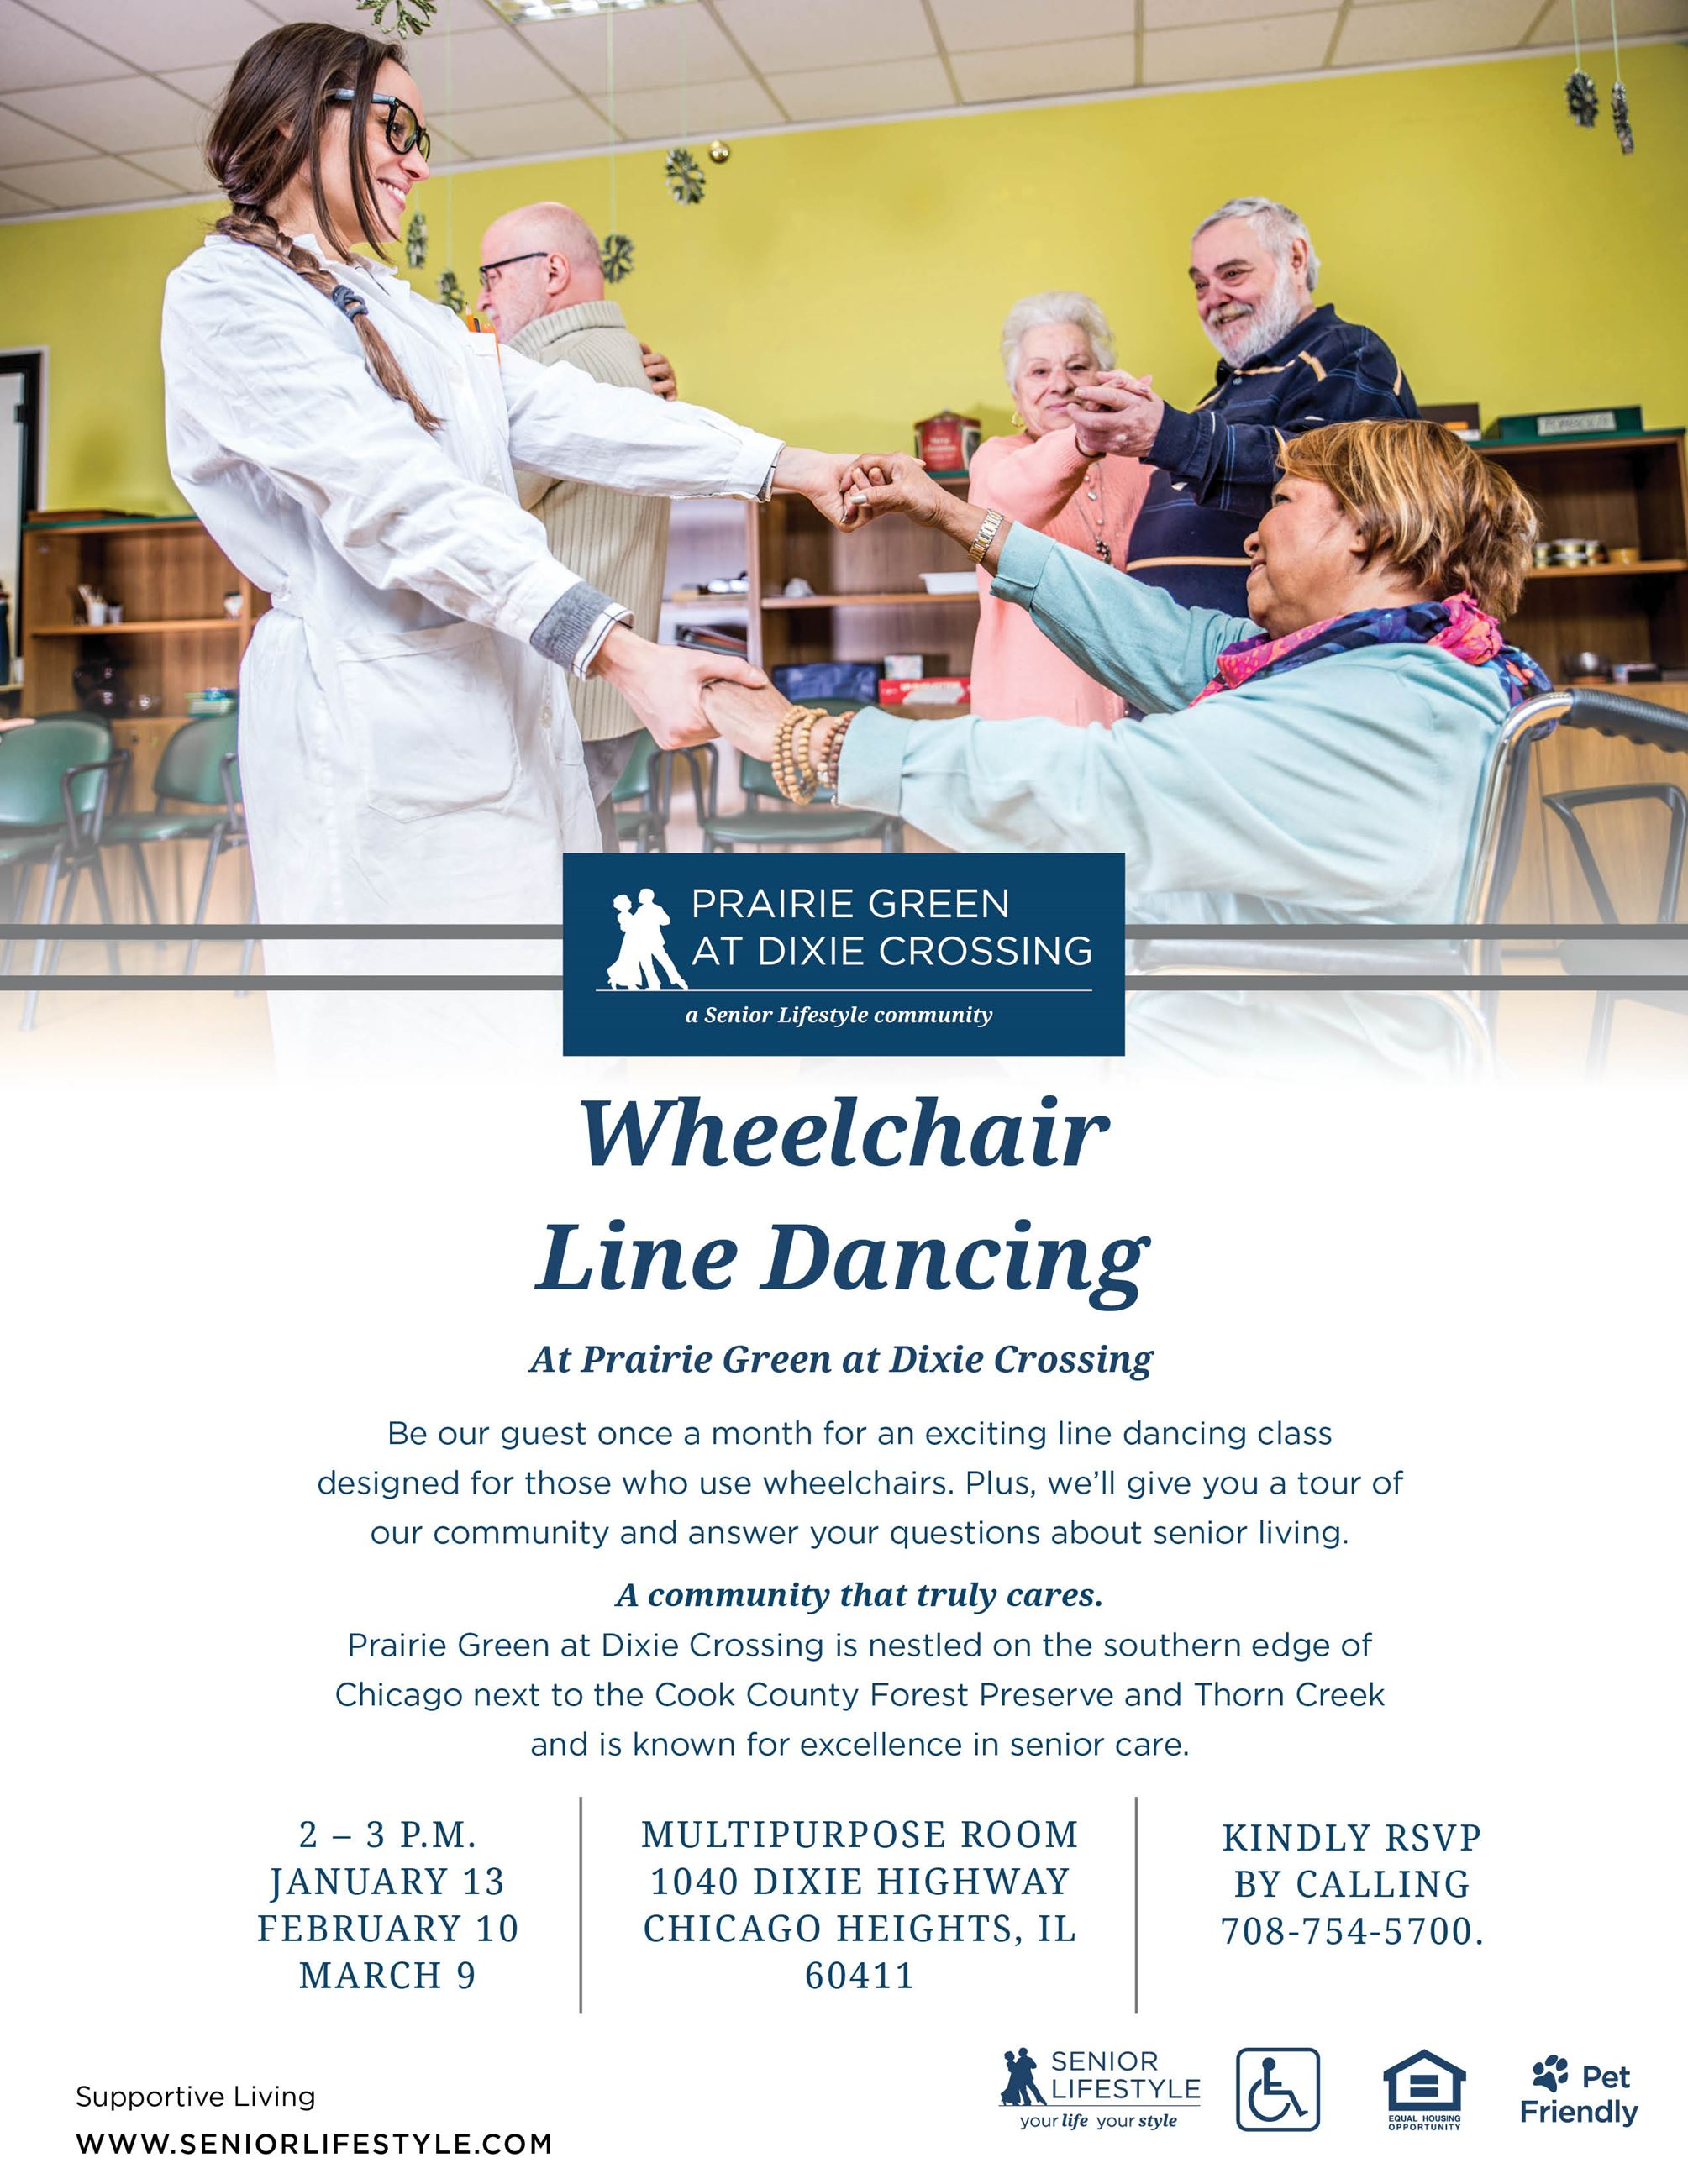 Prairie Green at Dixie Crossing - Wheelchair Line Dancing Classes 2020